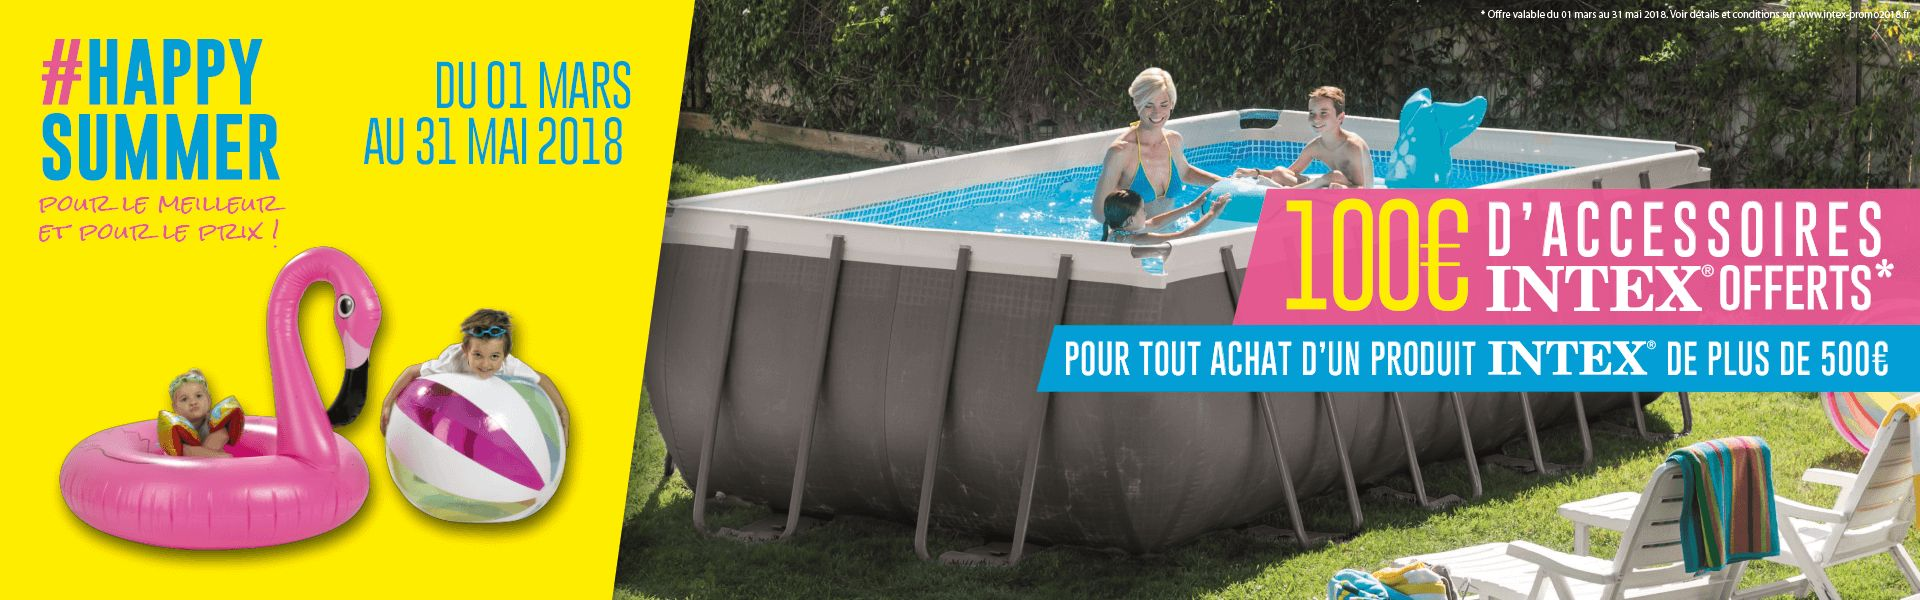 Cash piscine la roche sur yon stunning gallery image of for Cash piscine la roche sur yon telephone